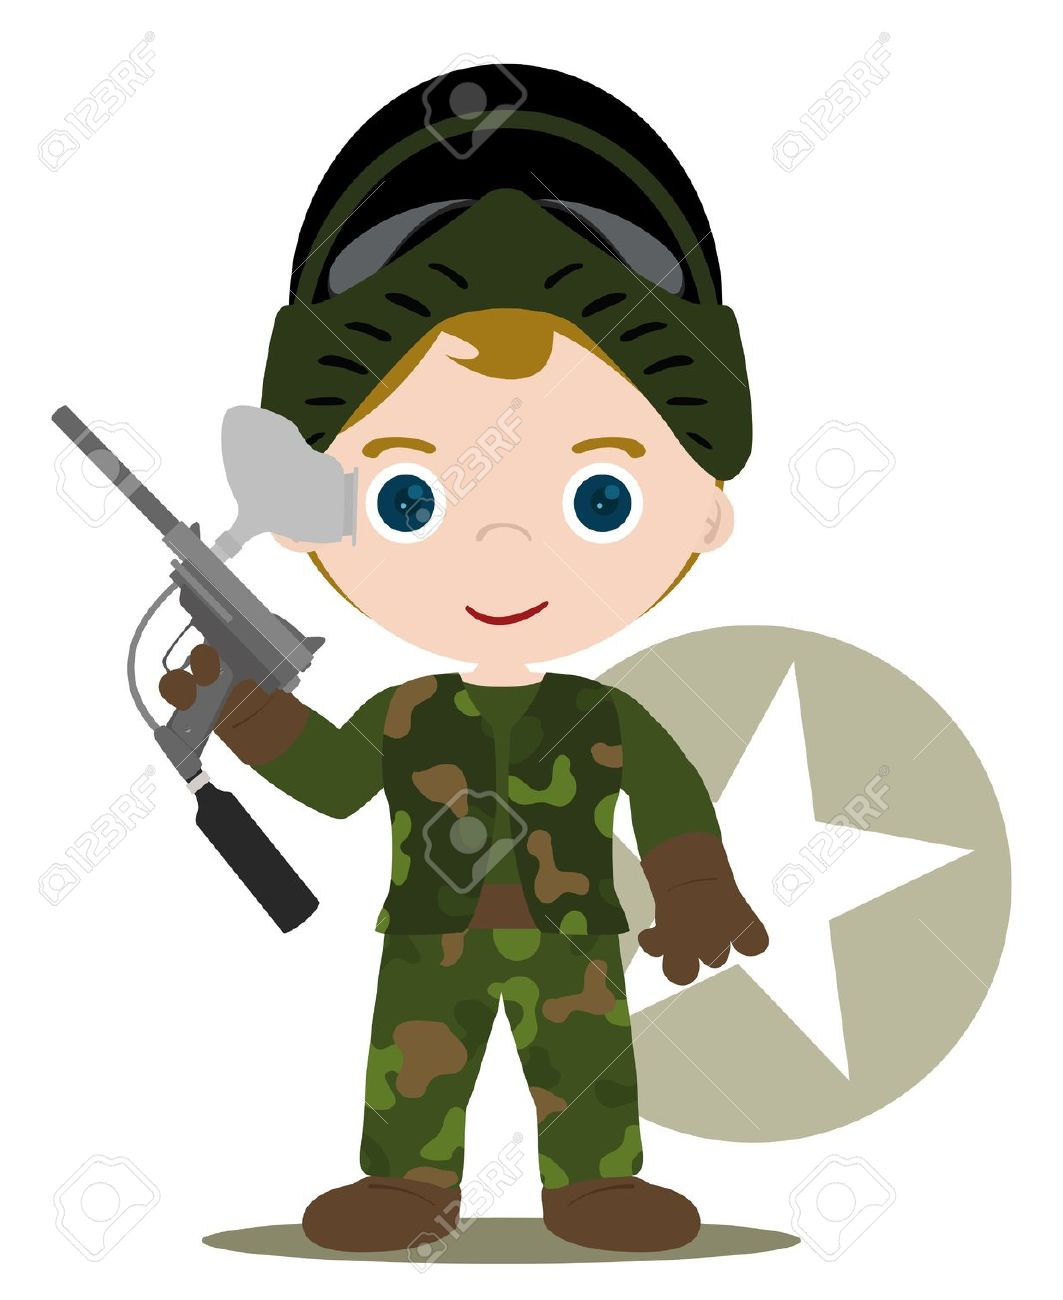 Soldiers clipart kid Clipart Kid soldier soldier clipart